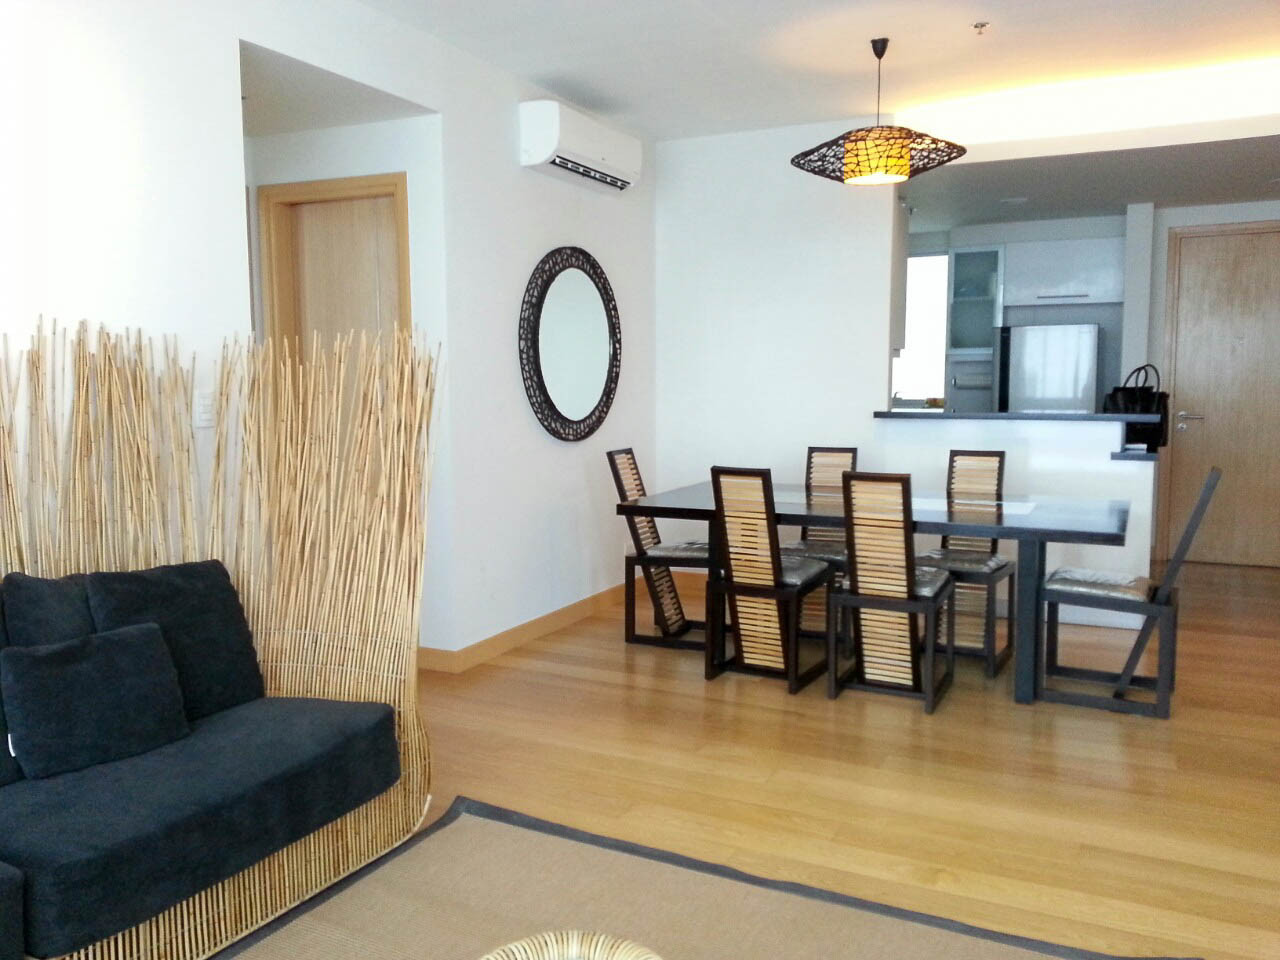 Best ideas about 2 Bedroom For Rent . Save or Pin 2 Bedroom Condo for Rent in Cebu Business Park 1016 Residences Now.